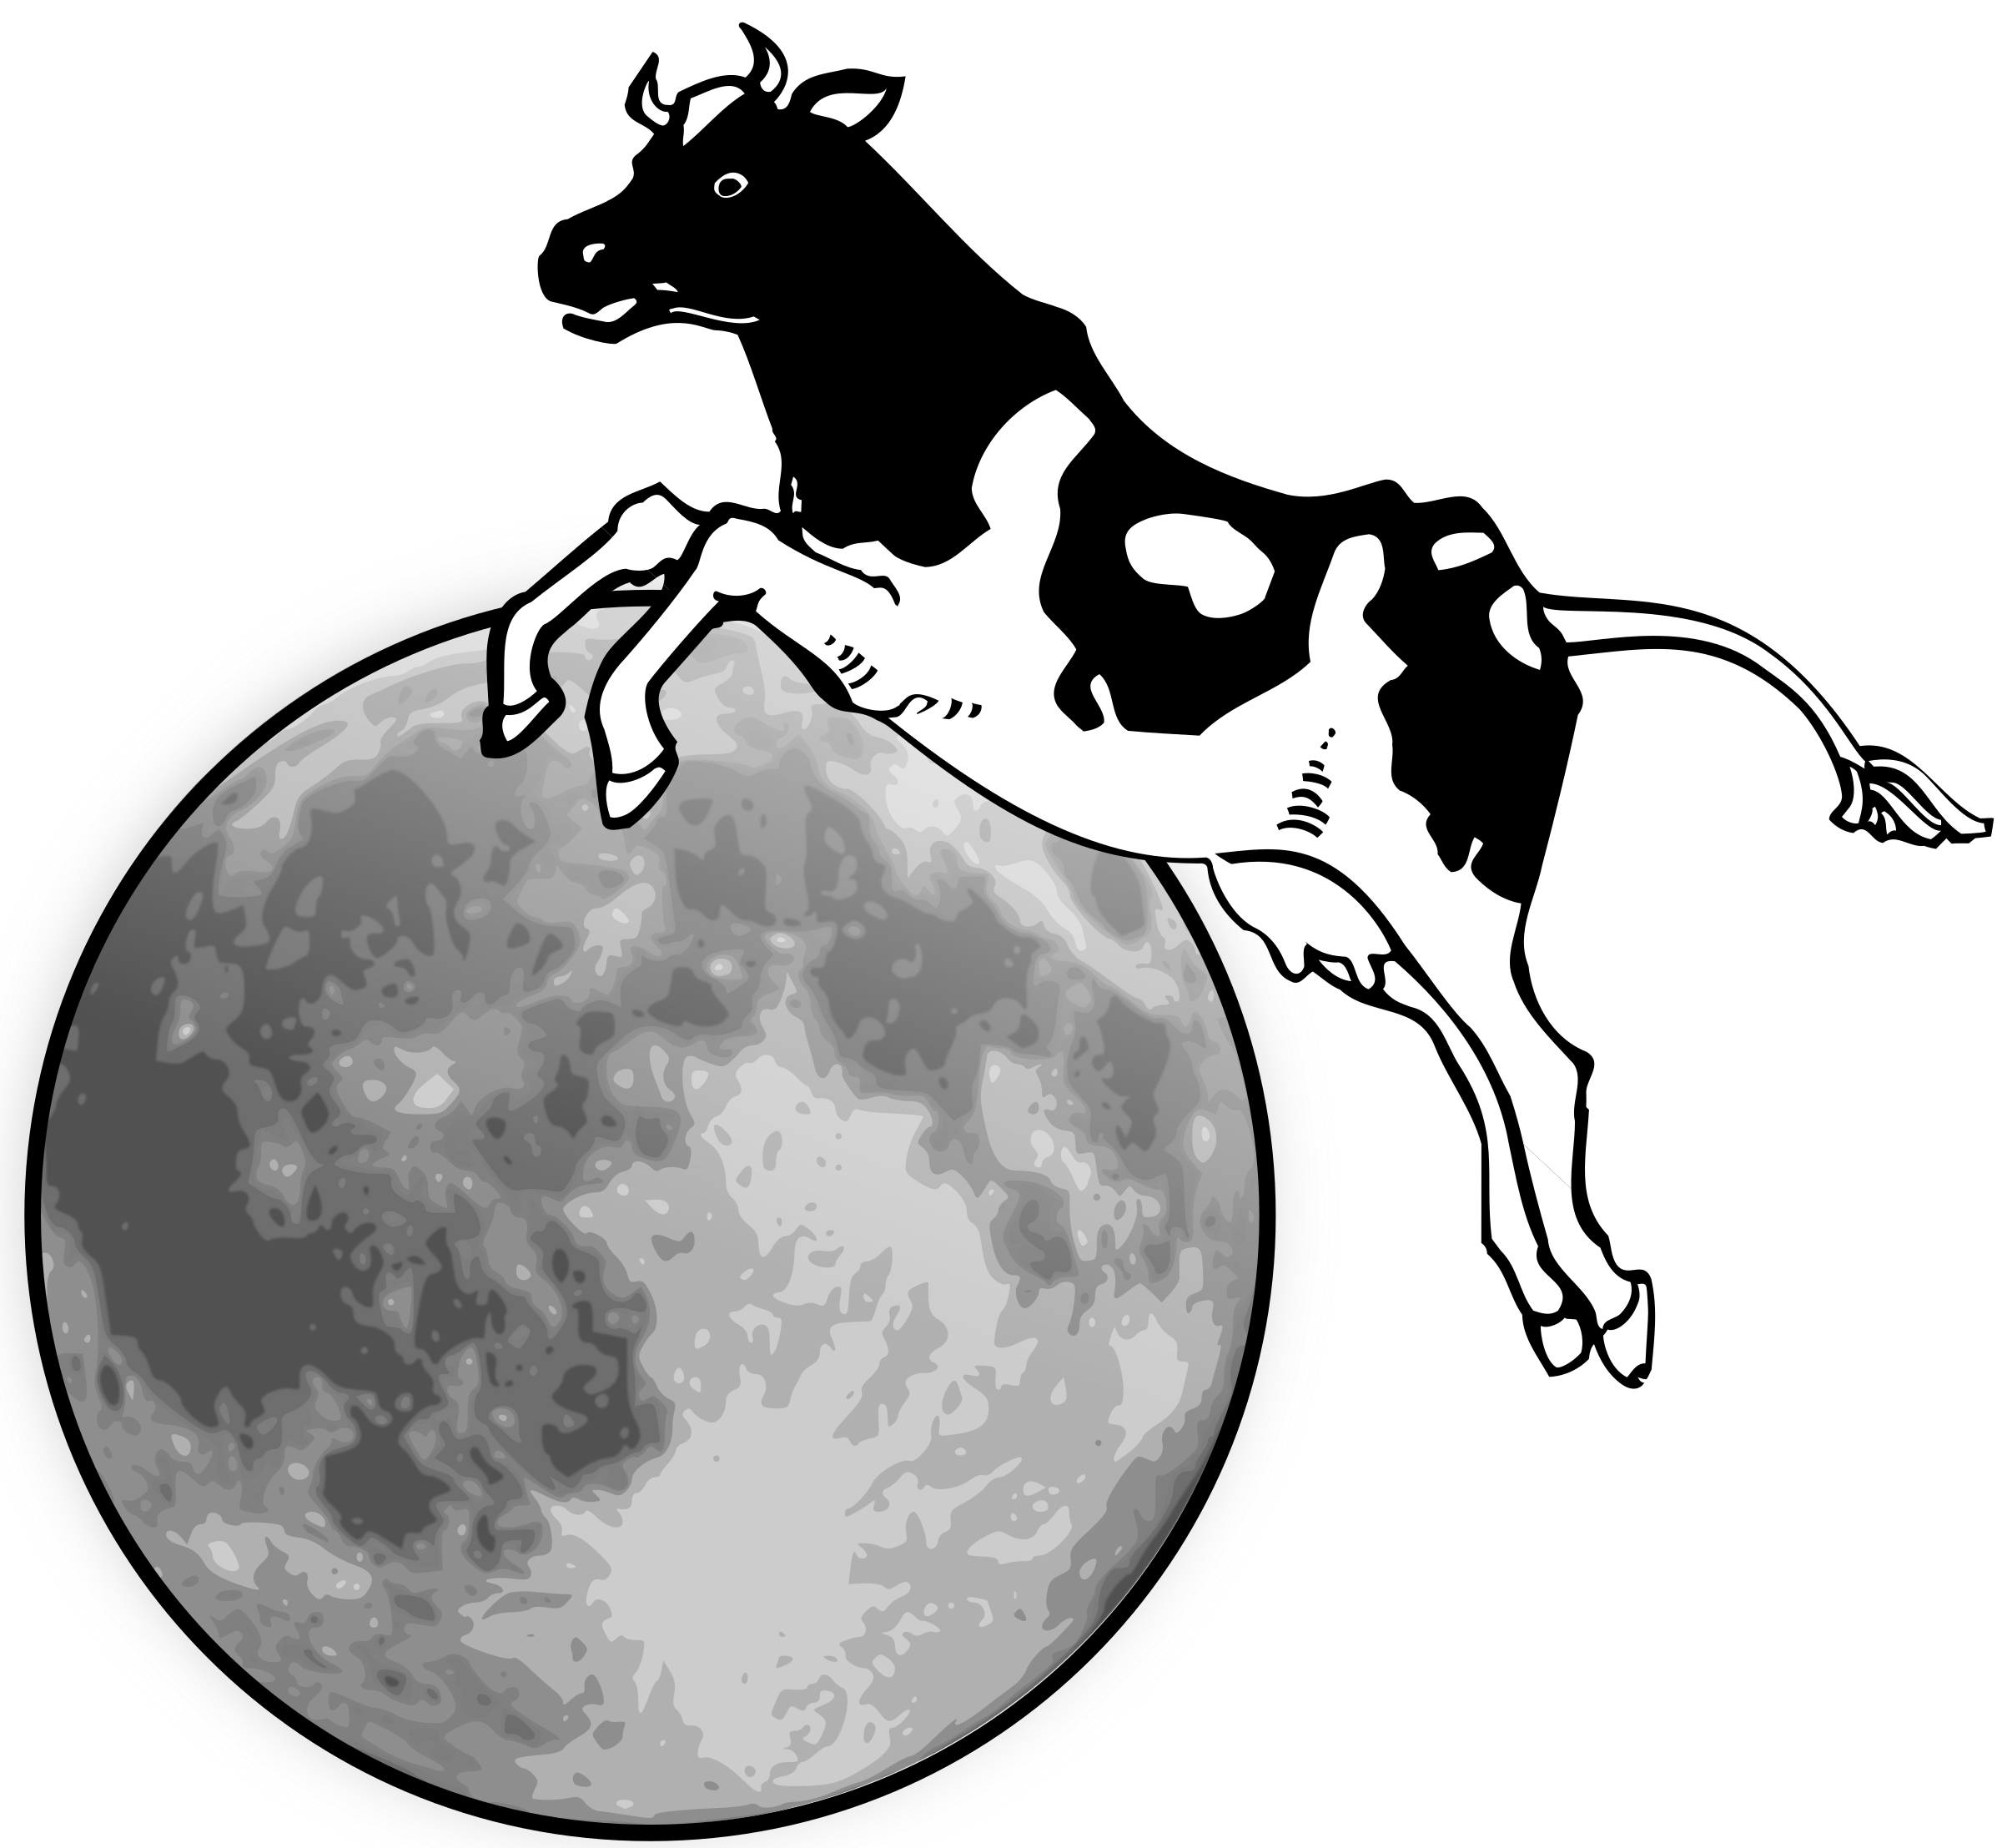 The cow jumped over the moon clipart graphic freeuse download Cow jumping over the moon vector clipart image - Free stock ... graphic freeuse download